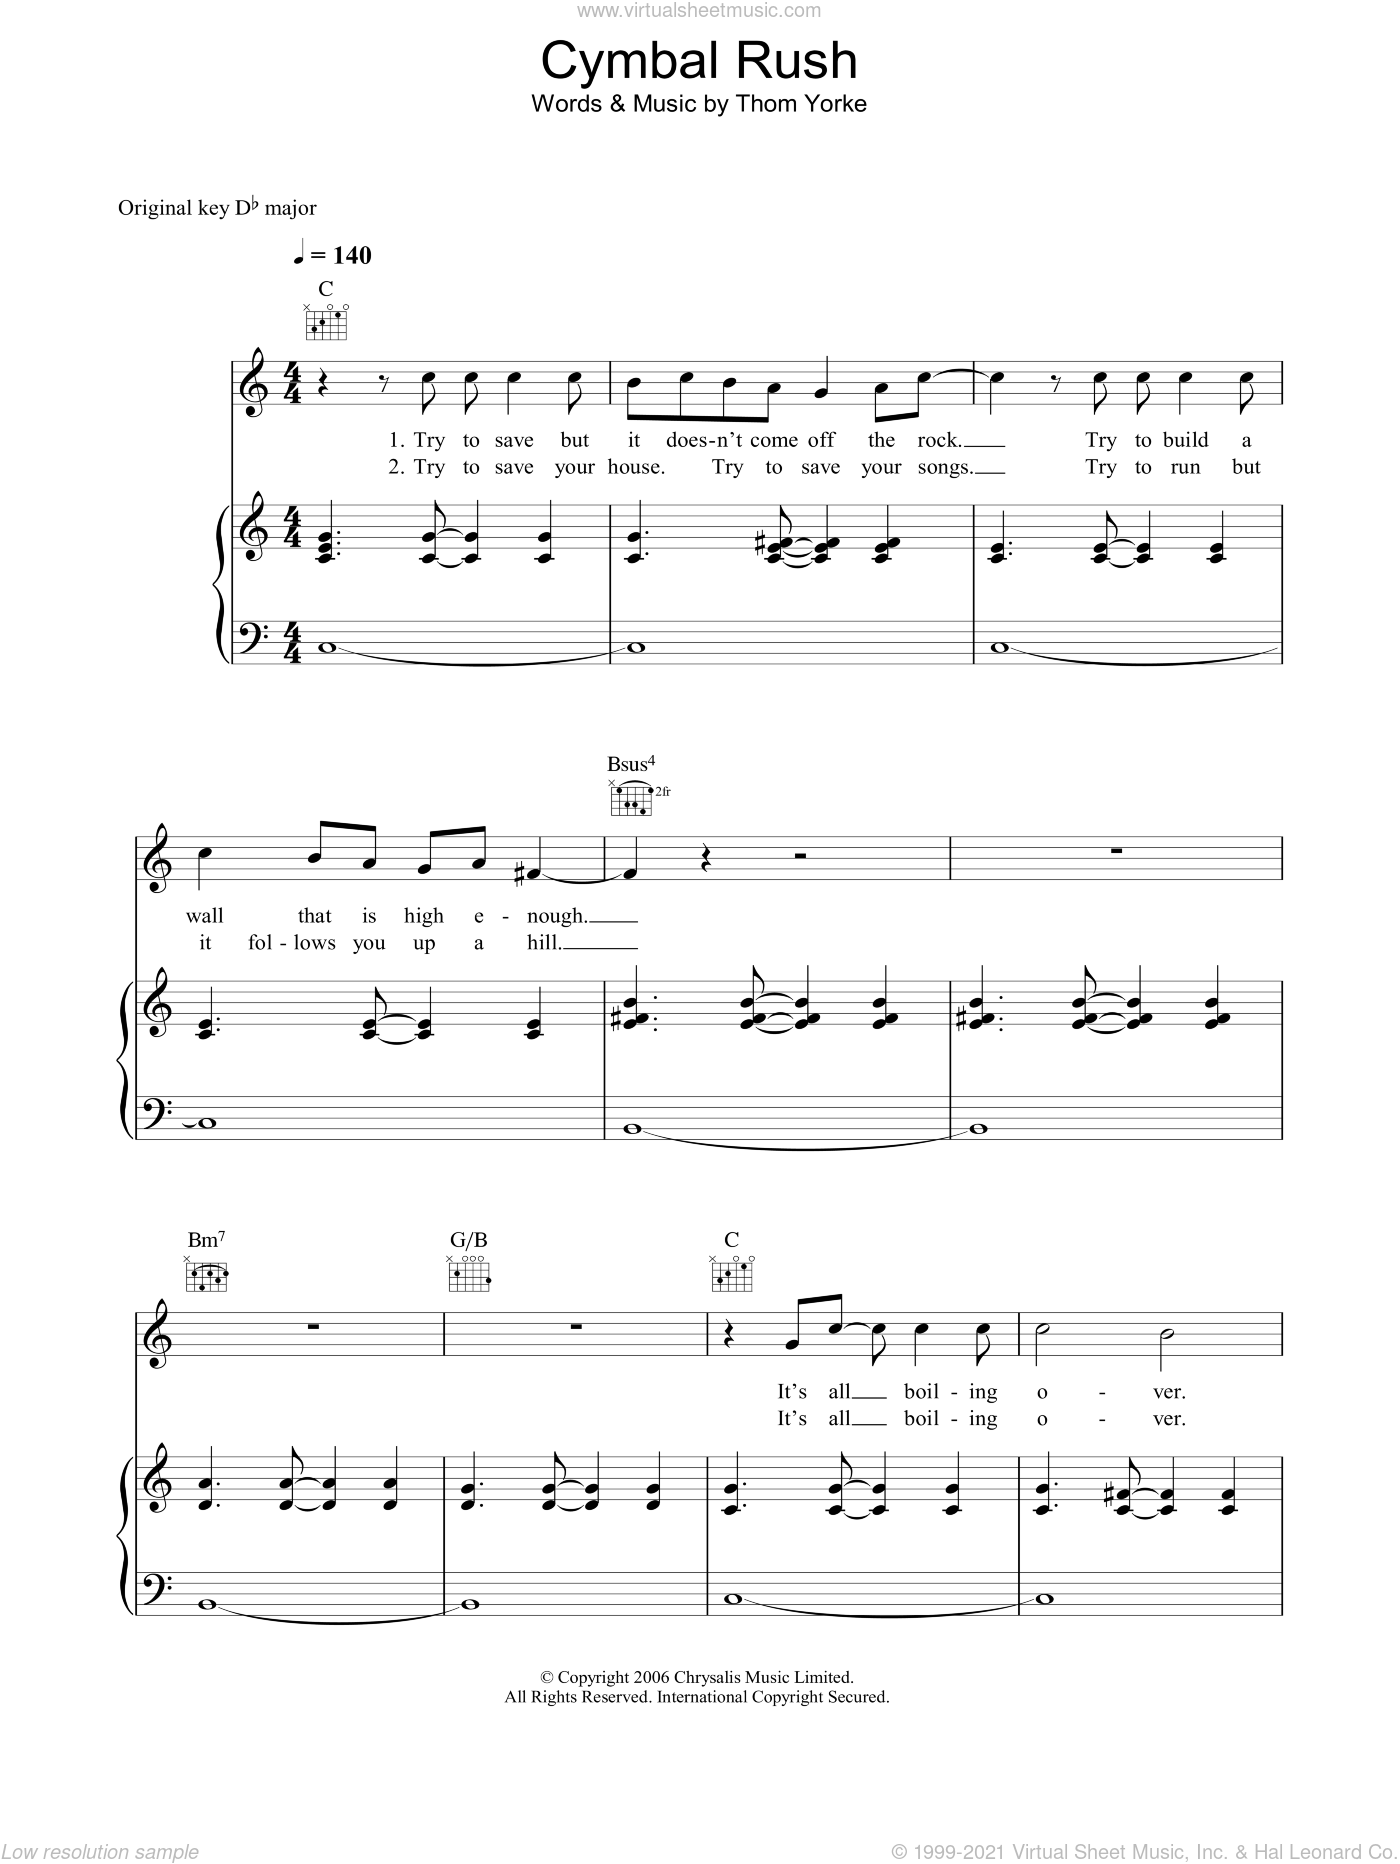 Cymbal Rush sheet music for voice, piano or guitar by Thom Yorke. Score Image Preview.